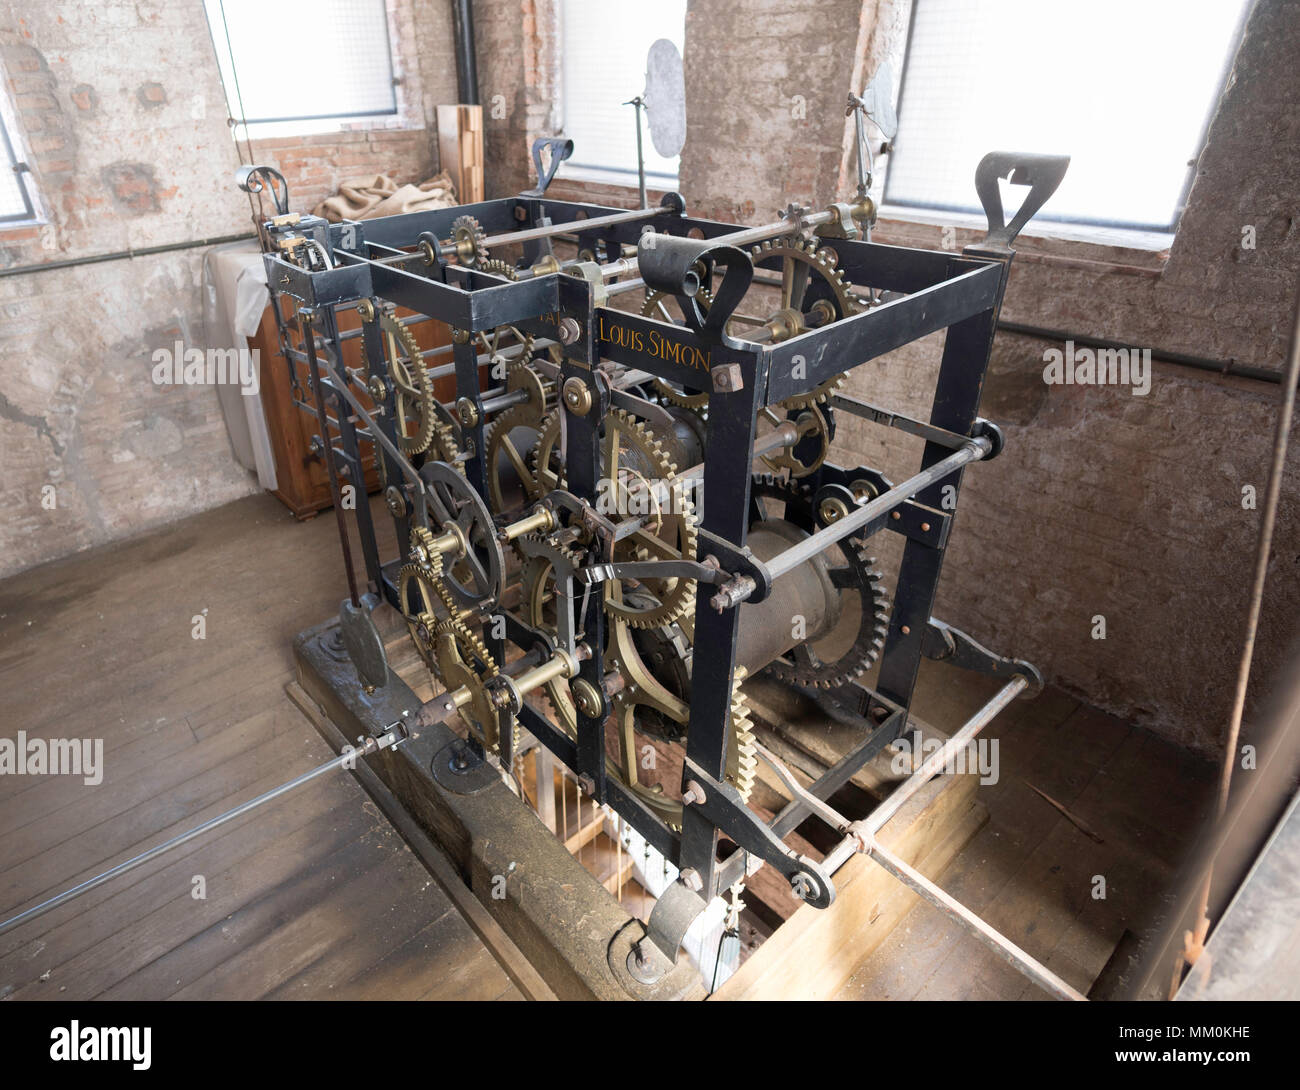 18th century clock mechanism by Swiss Louis Simon within the Torre Delle Ore, Lucca, Tuscany, Italy Stock Photo